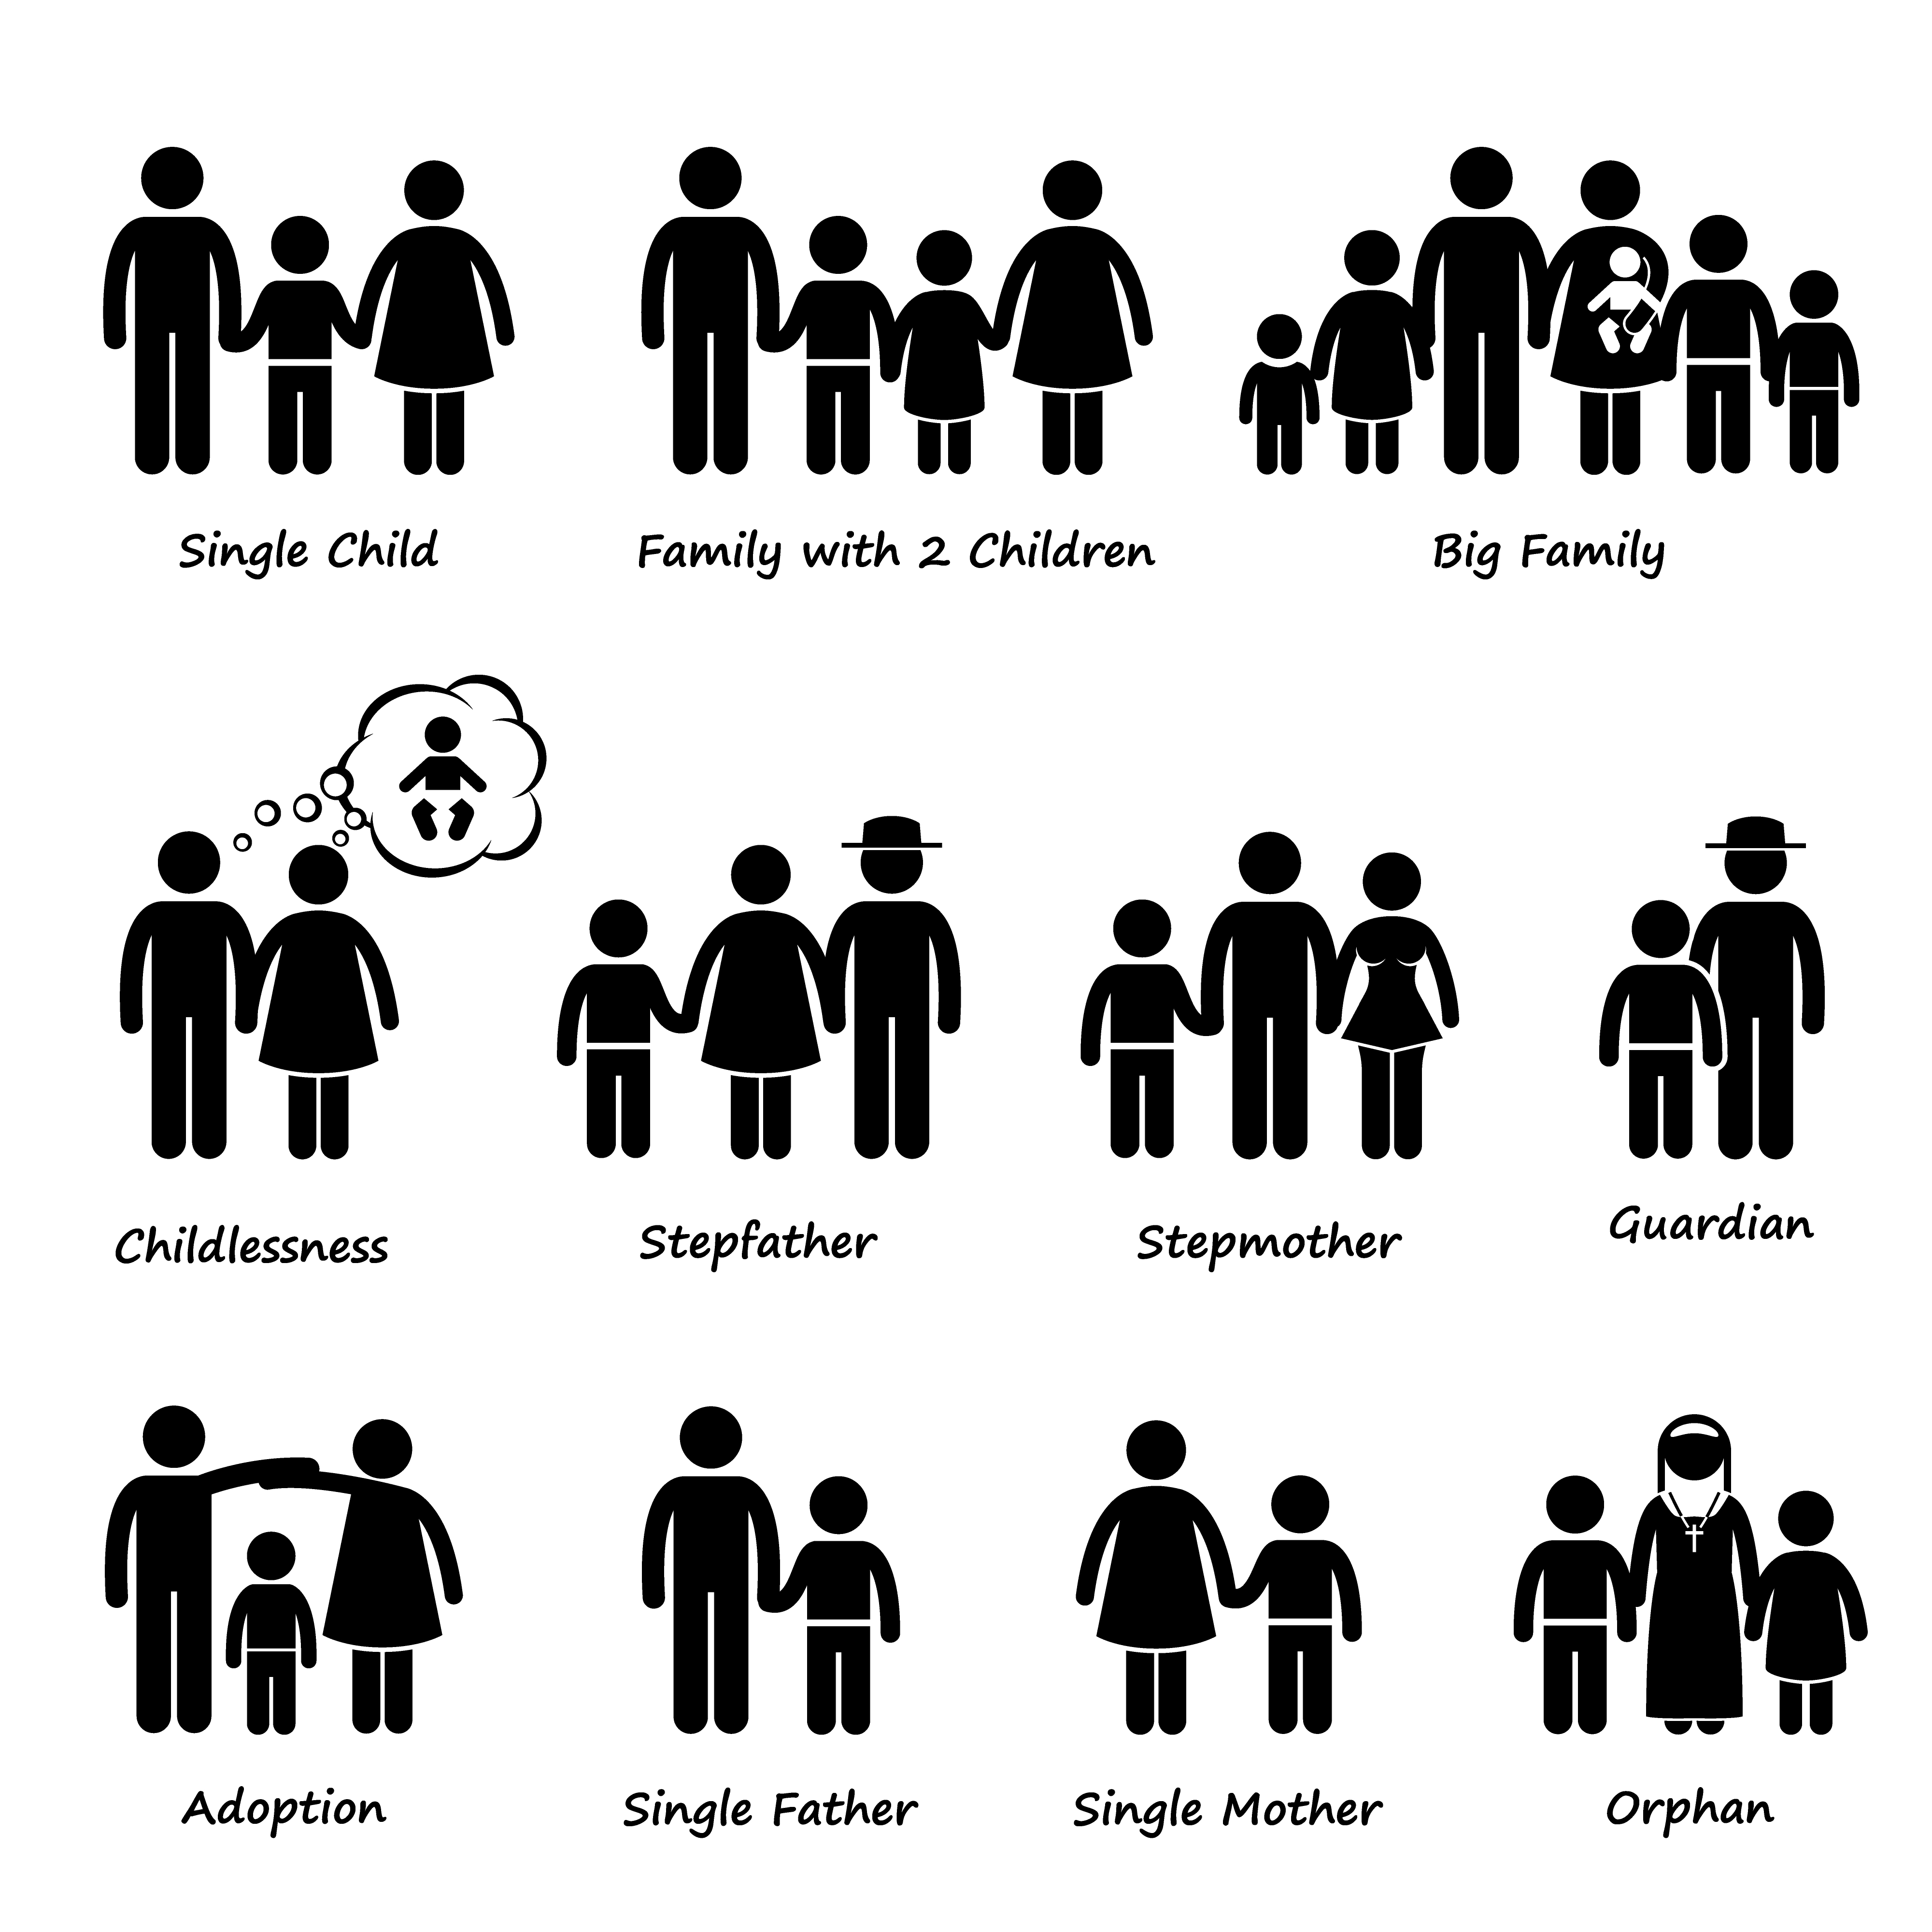 Family Size And Type Of Relationship Stick Figure